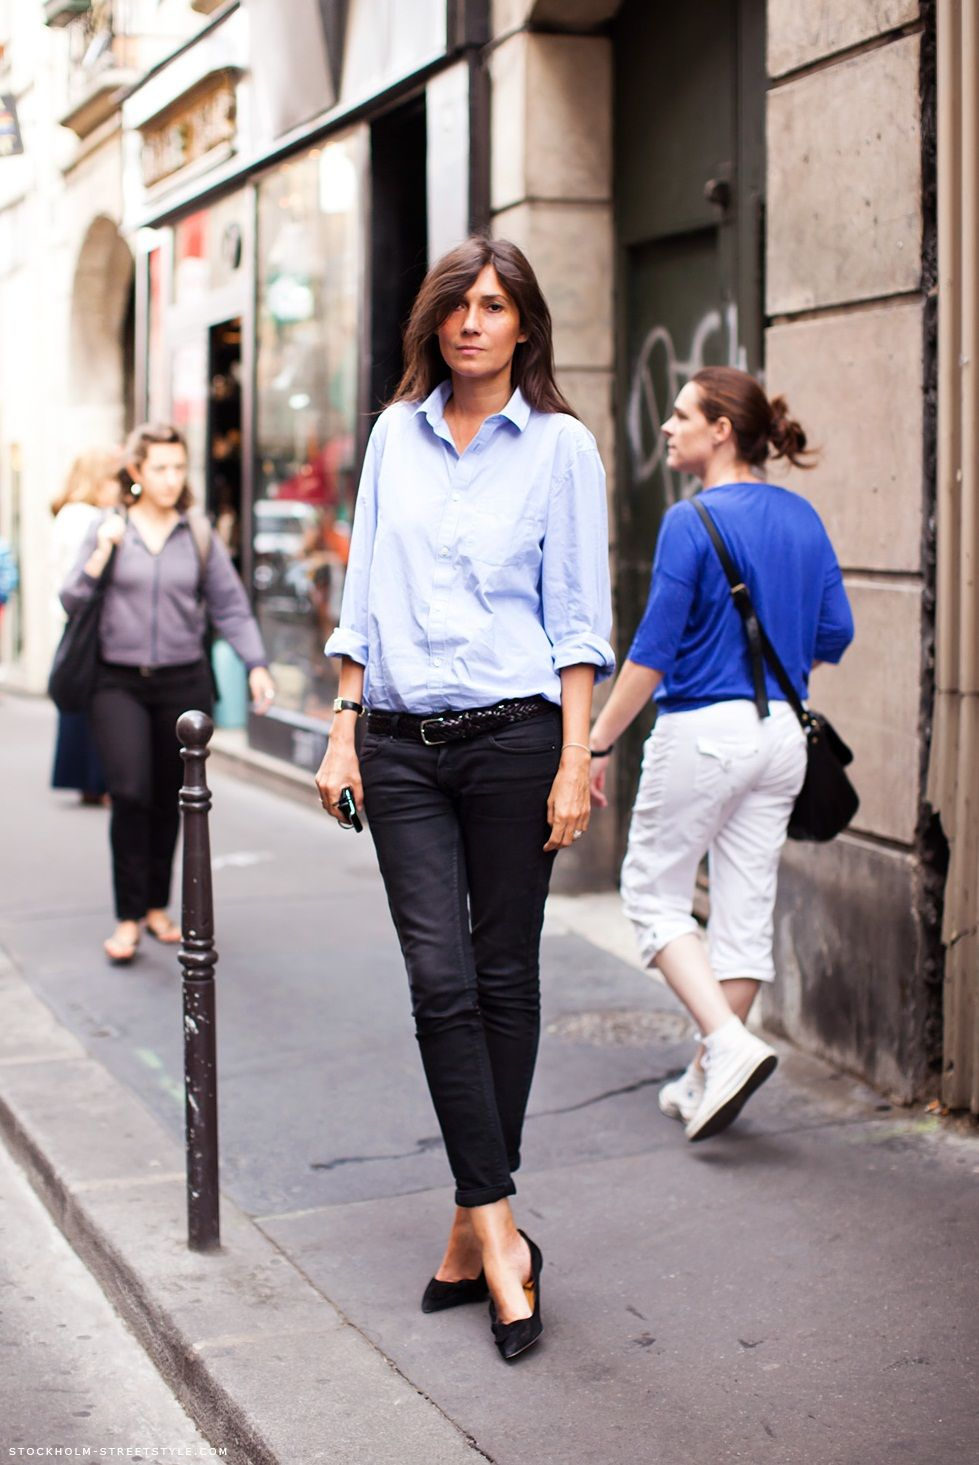 Emmanuelle Alt. Photo by Stockholm Streetstyle